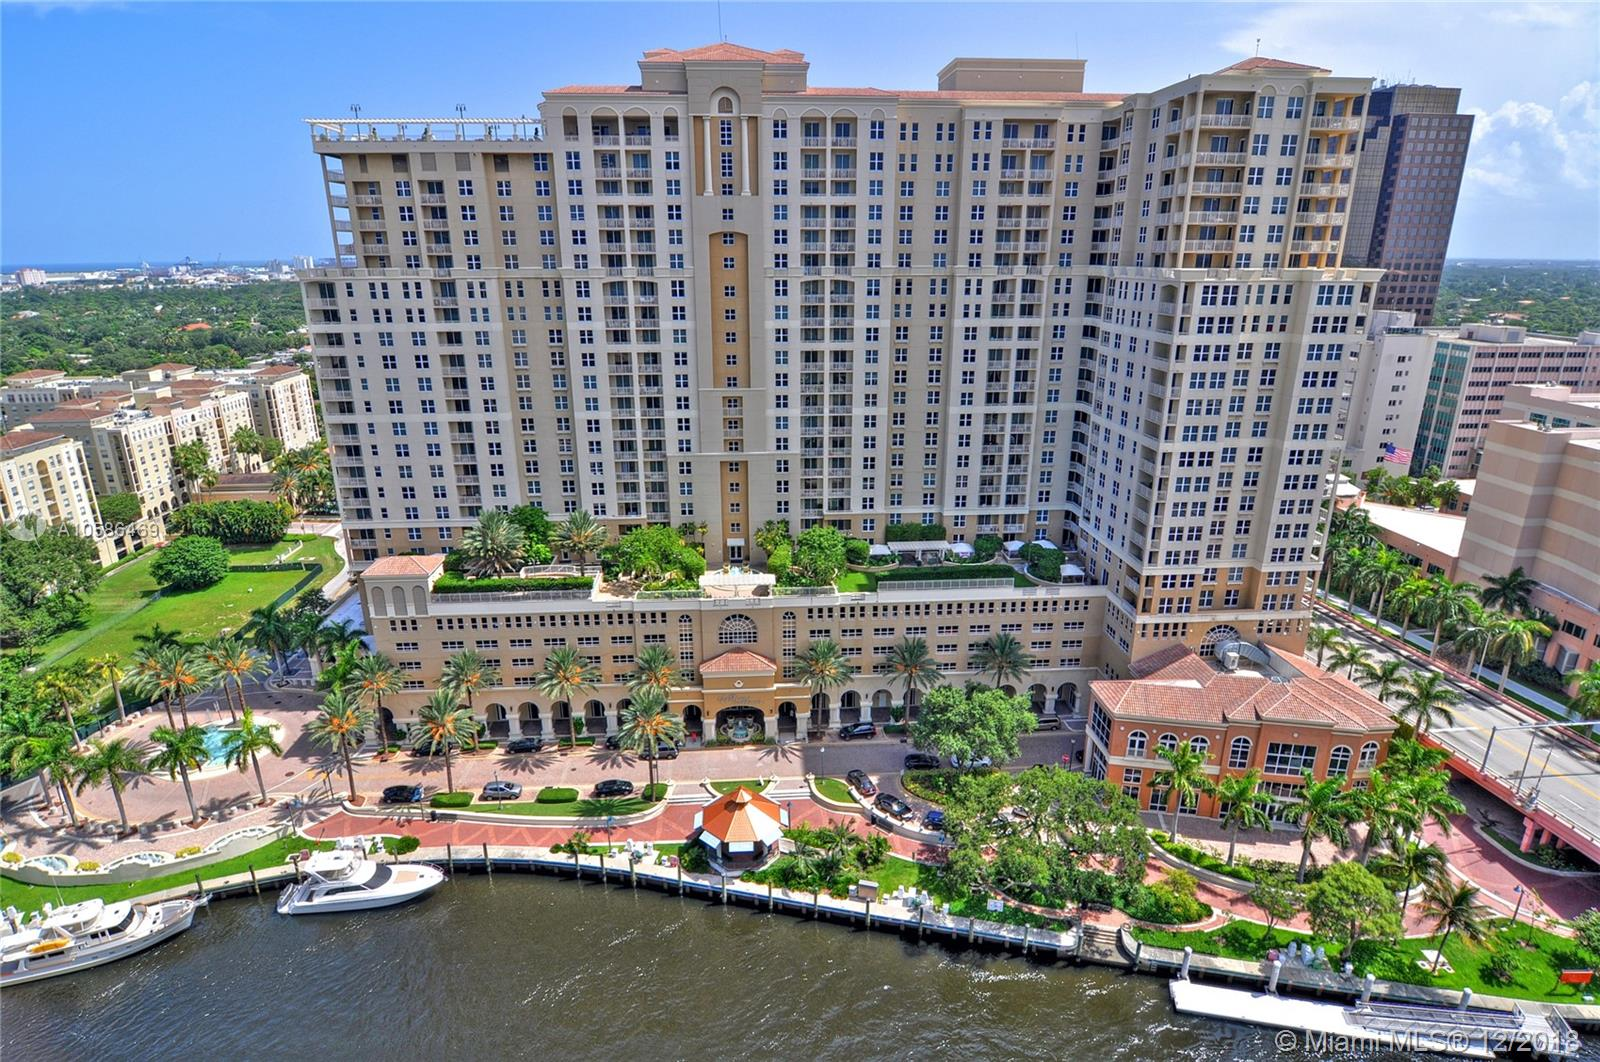 Just Updated 3 Bed/2 Bath Condo in convenient Nu River Landings.  Large unit features tasteful & top-quality upgrades: A new kitchen w/ white cabinets, beautiful quartz counter-tops, extra deep sink, plus GE Elite stainless appliances.  New bathrooms w/ plenty of cabinets, upgraded showers & fixtures, updated lighting, mirrors, & handicap accessible master-bath. New flooring is tile planks in living areas & rich wood in bedrooms. This home also has a separate utility room w/ full-sized washer, dryer, & a spare fridge. Beautiful South-East Views from the balcony, kitchen, & two bedrooms. Partial river view but that is not the main attraction in this exquisite condo.  Building's terrific amenities: roof top pool, indoor basketball, spa, valet, and more. Make Nu River Landings your new home.